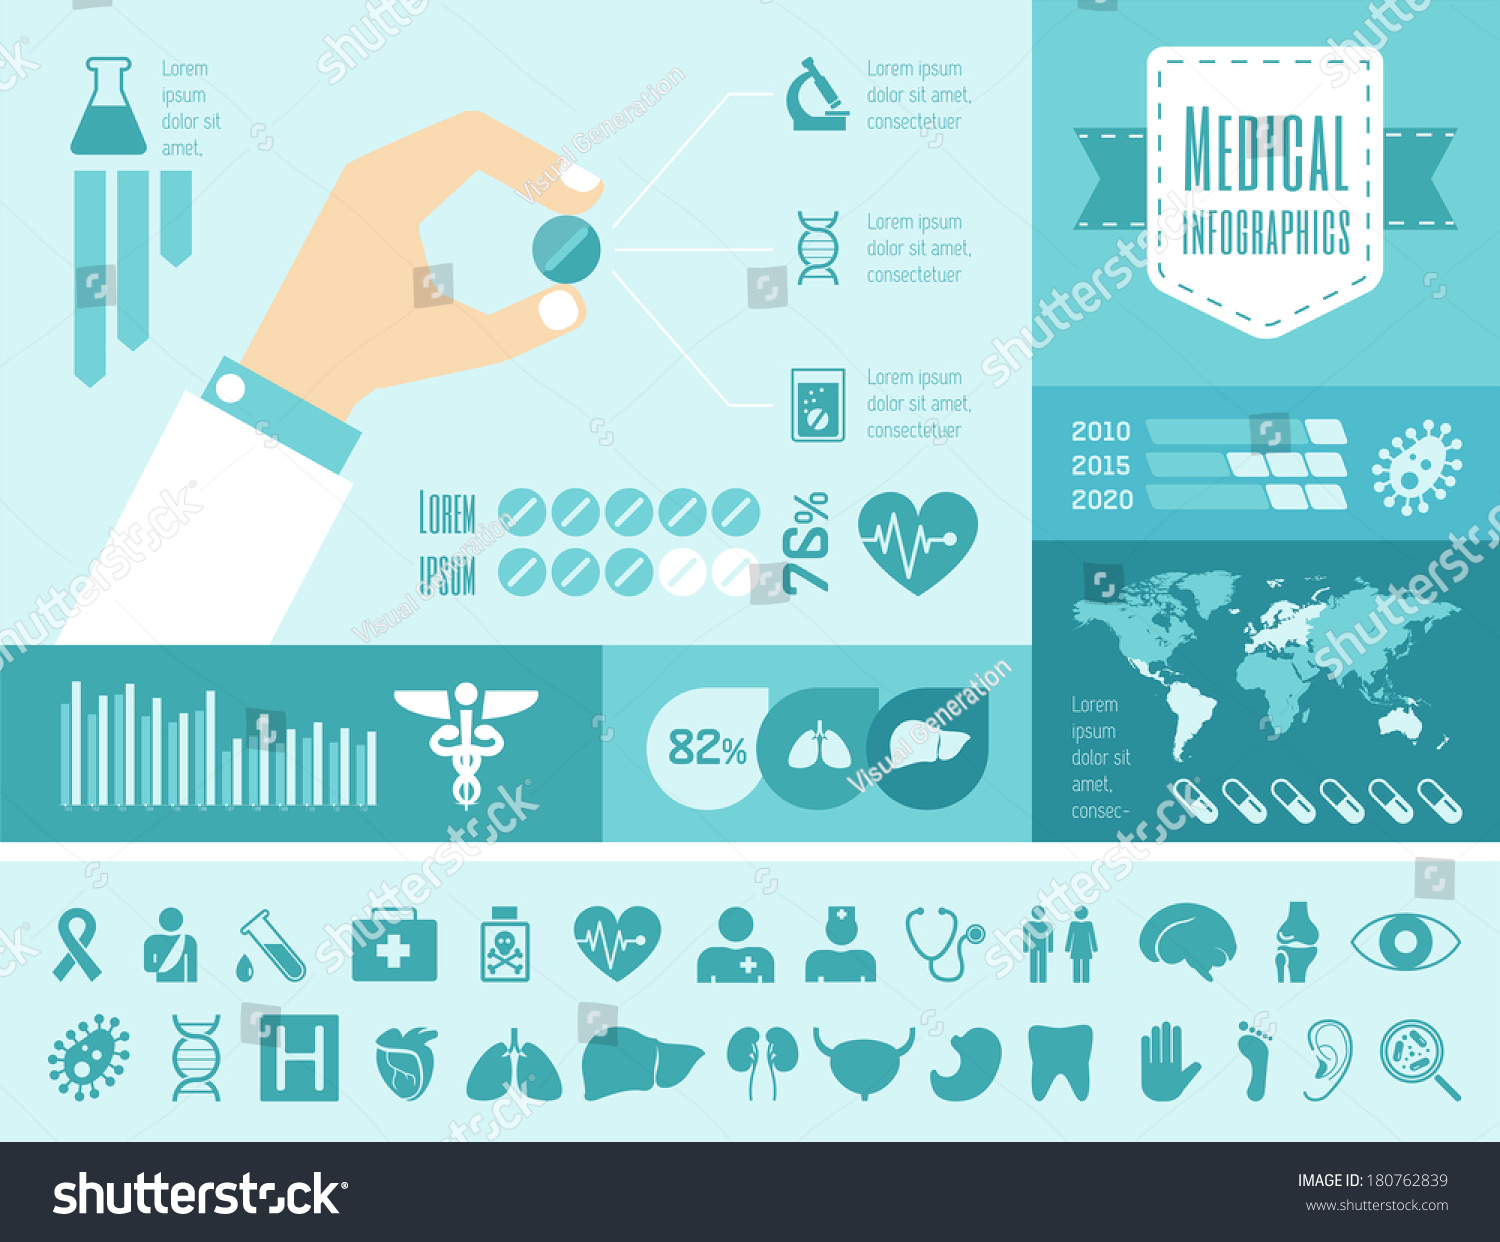 royalty free vector medical infographic presentation 180762839